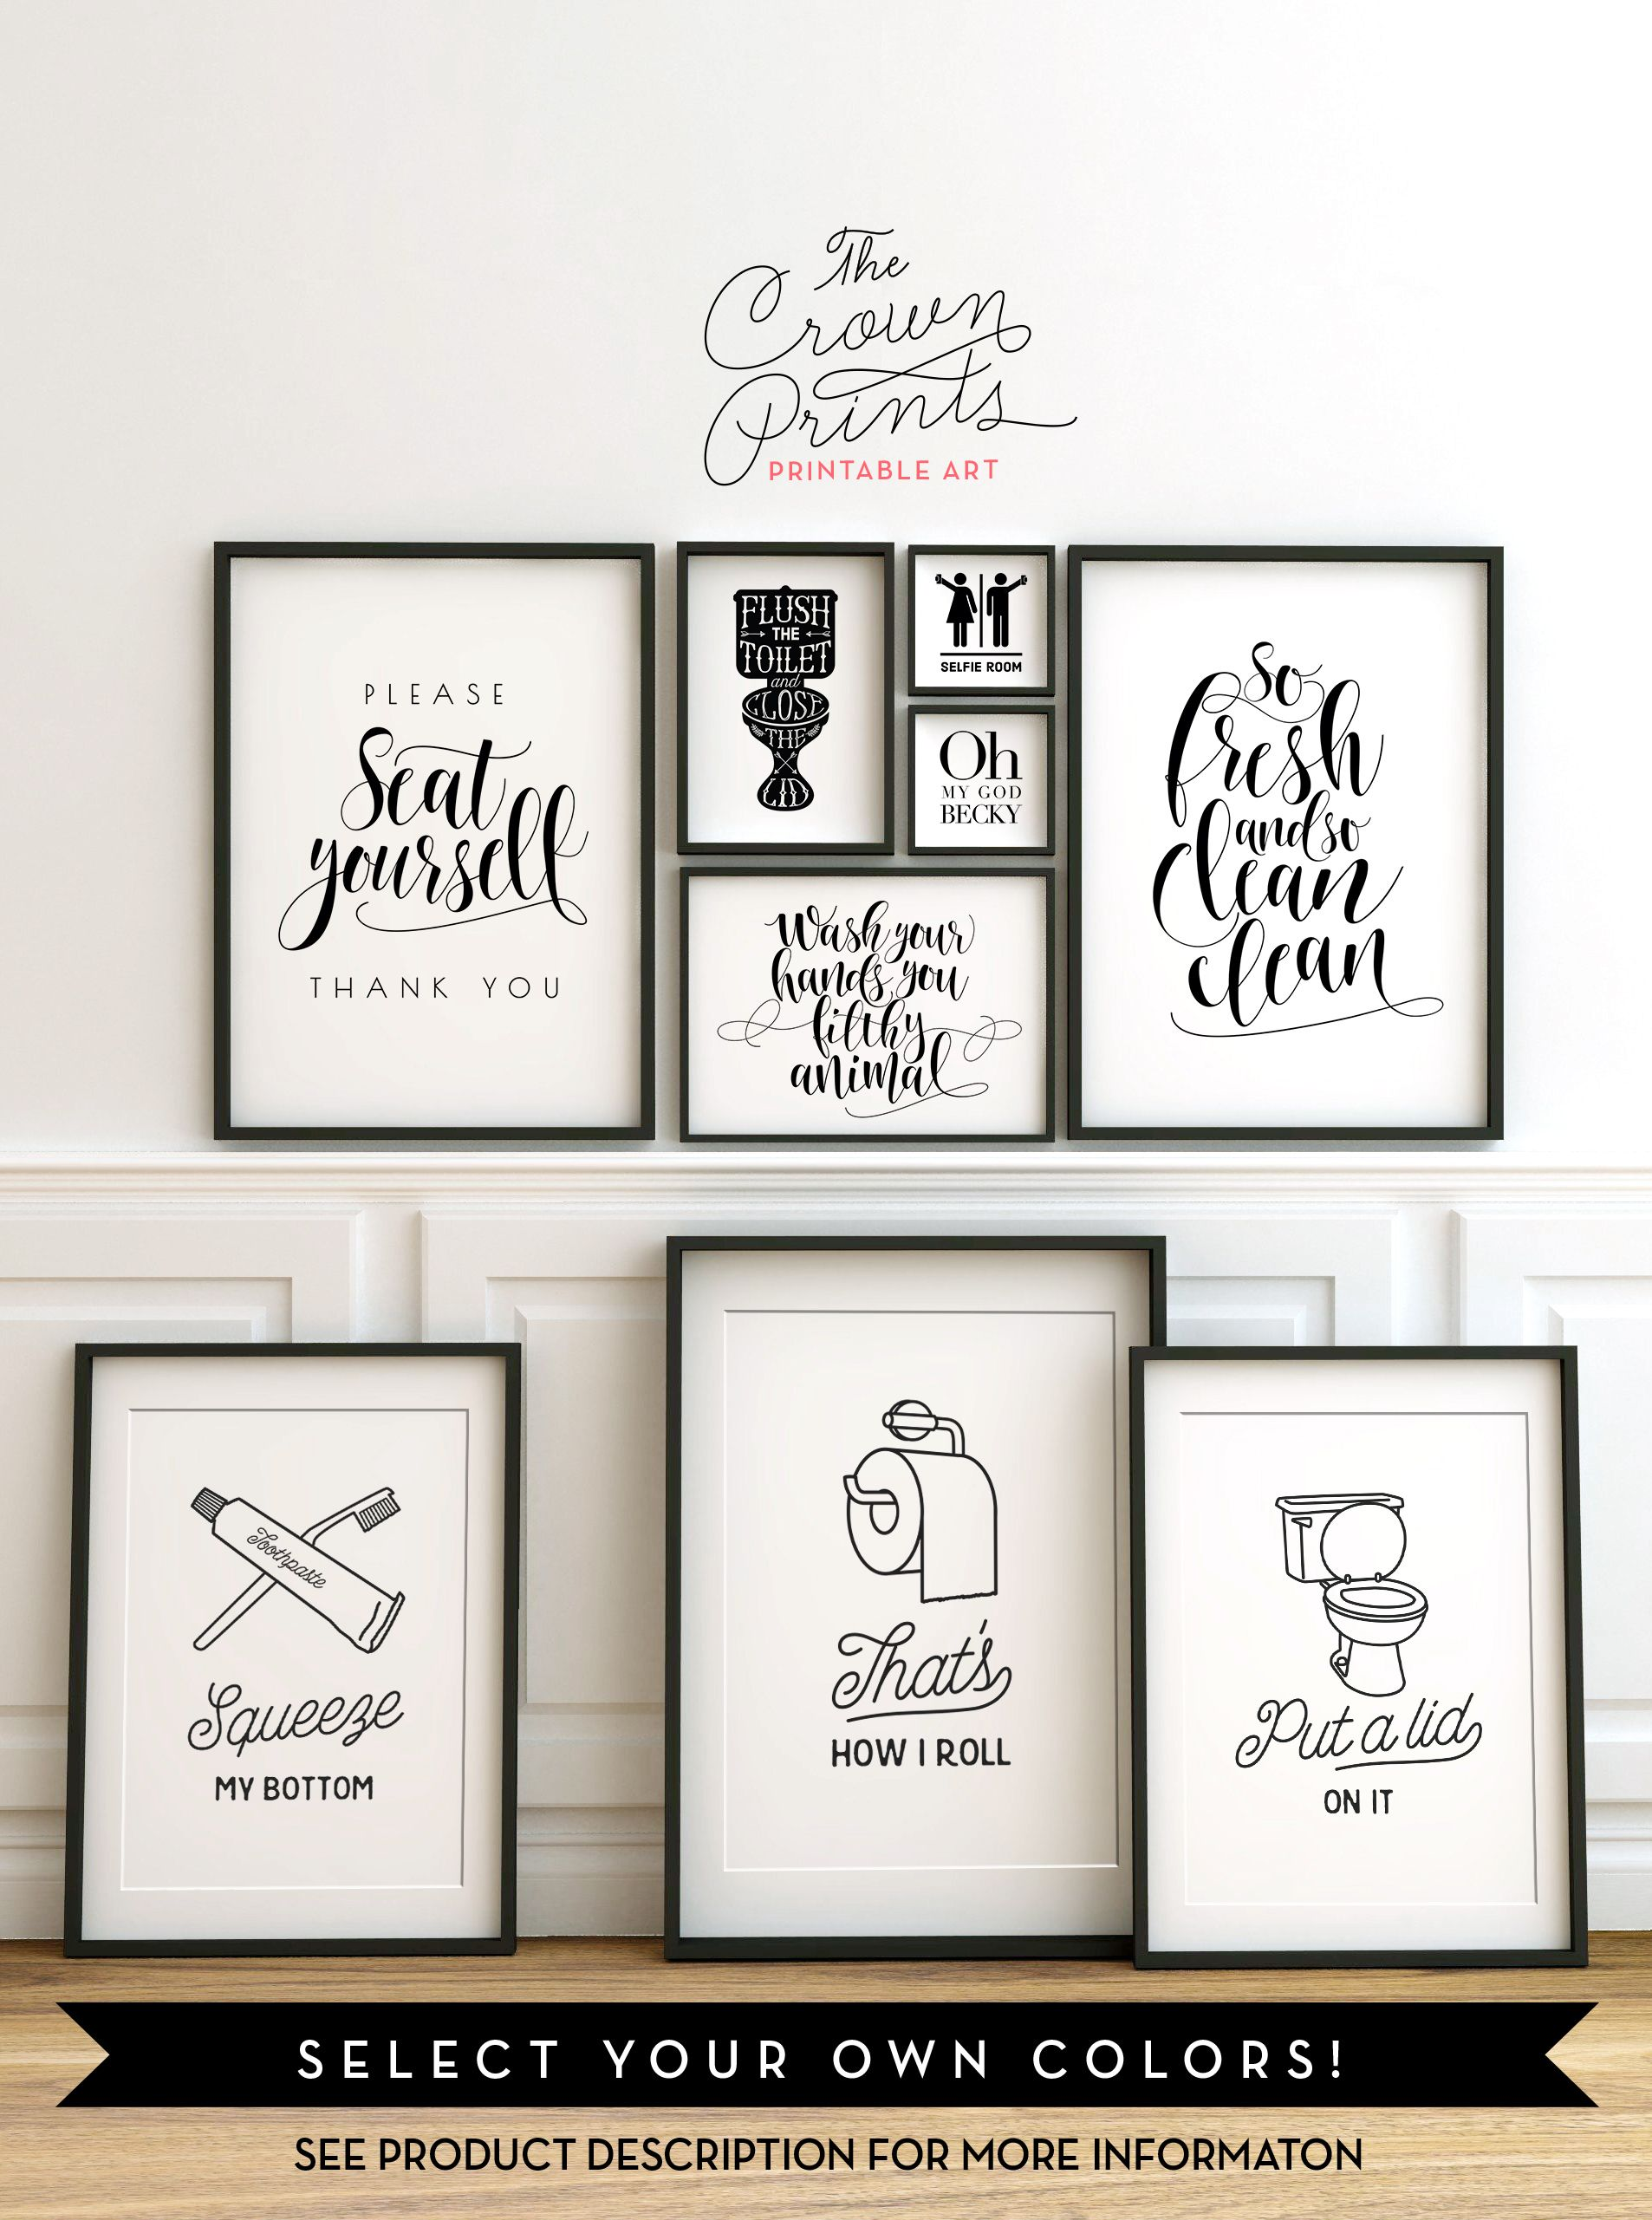 Printable bathroom wall art from the crown prints on etsy for Bathroom wall decor quotes